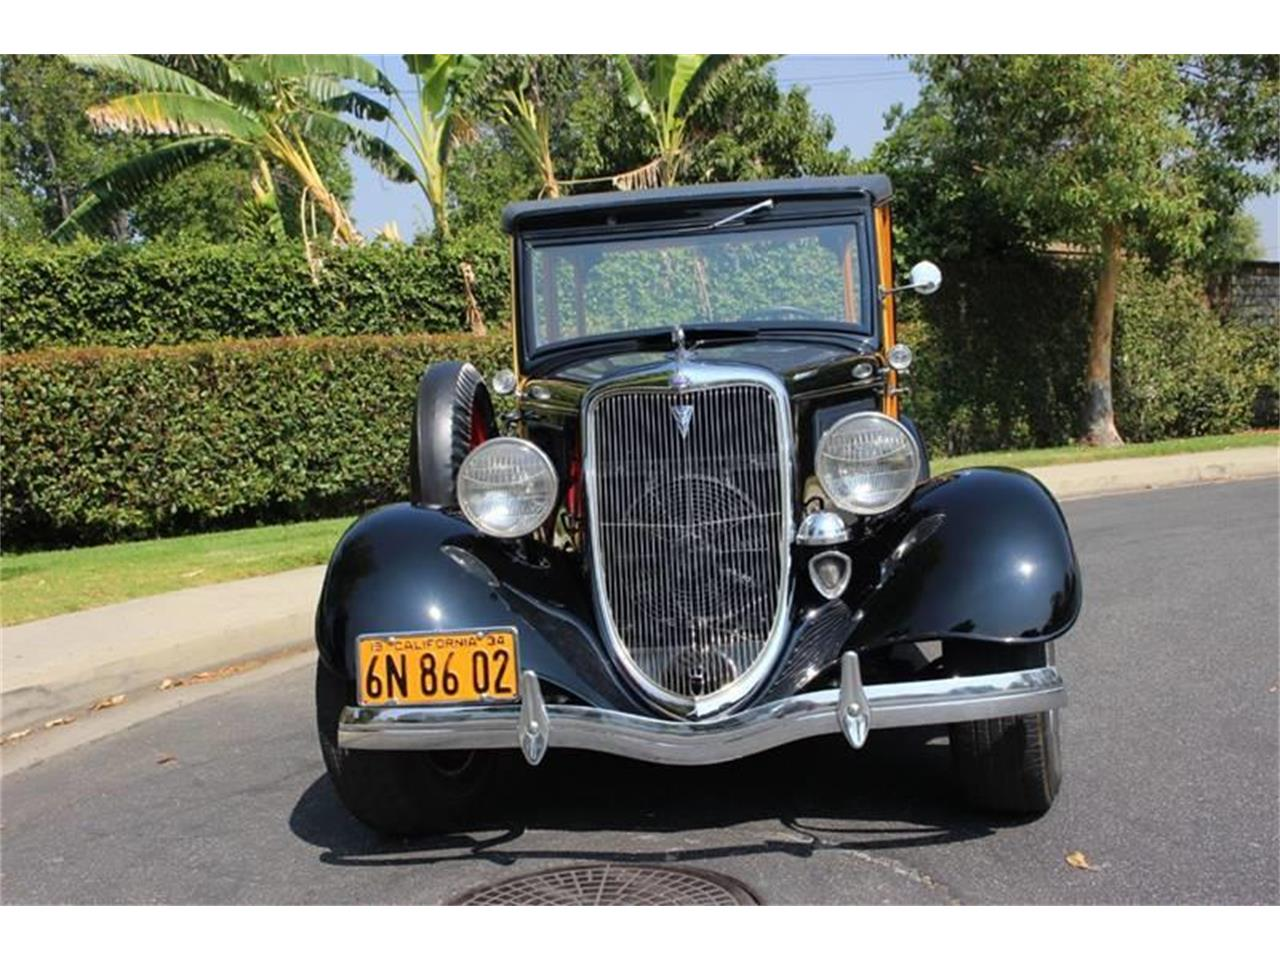 Large Picture of '34 Ford Woody Wagon located in La Verne California Auction Vehicle Offered by American Classic Cars - LDYJ